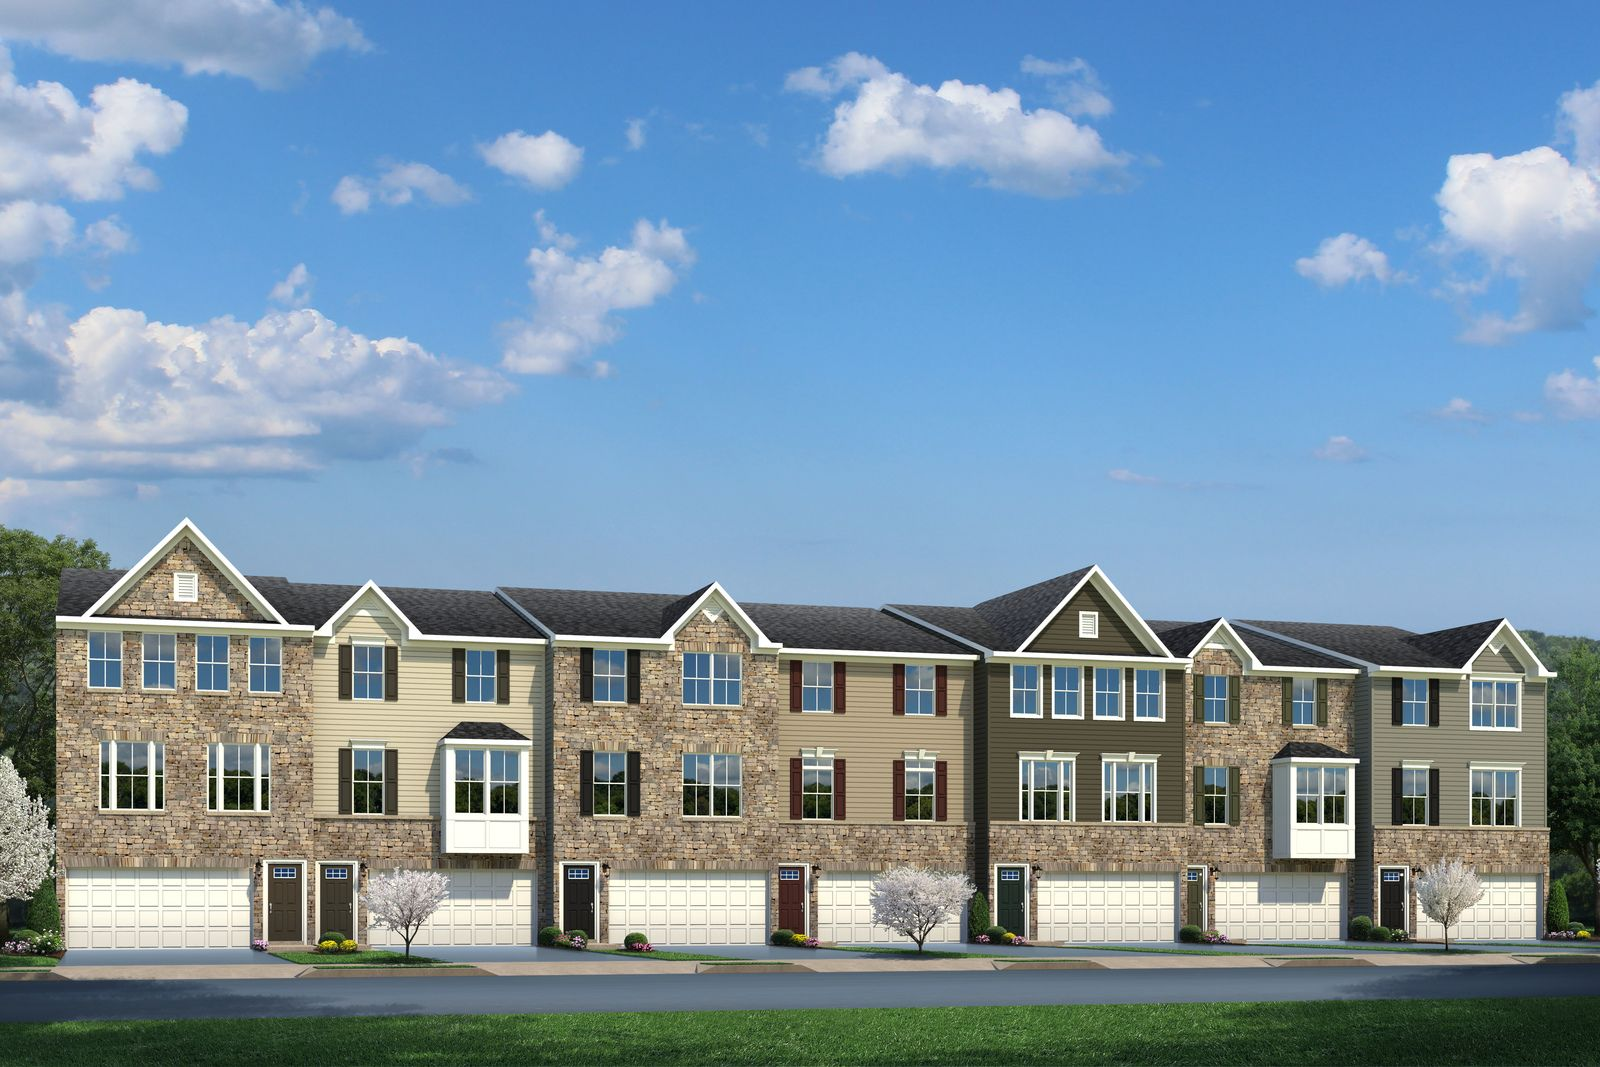 Welcome to Mountain Ridge!:Lowest-priced new townhomes in Morris County. Spacious floorplans with 2-car garages within 1 mi of shopping, dining, and Rt. 80. Niche.com A+ rated schools.Schedule an appointment today!